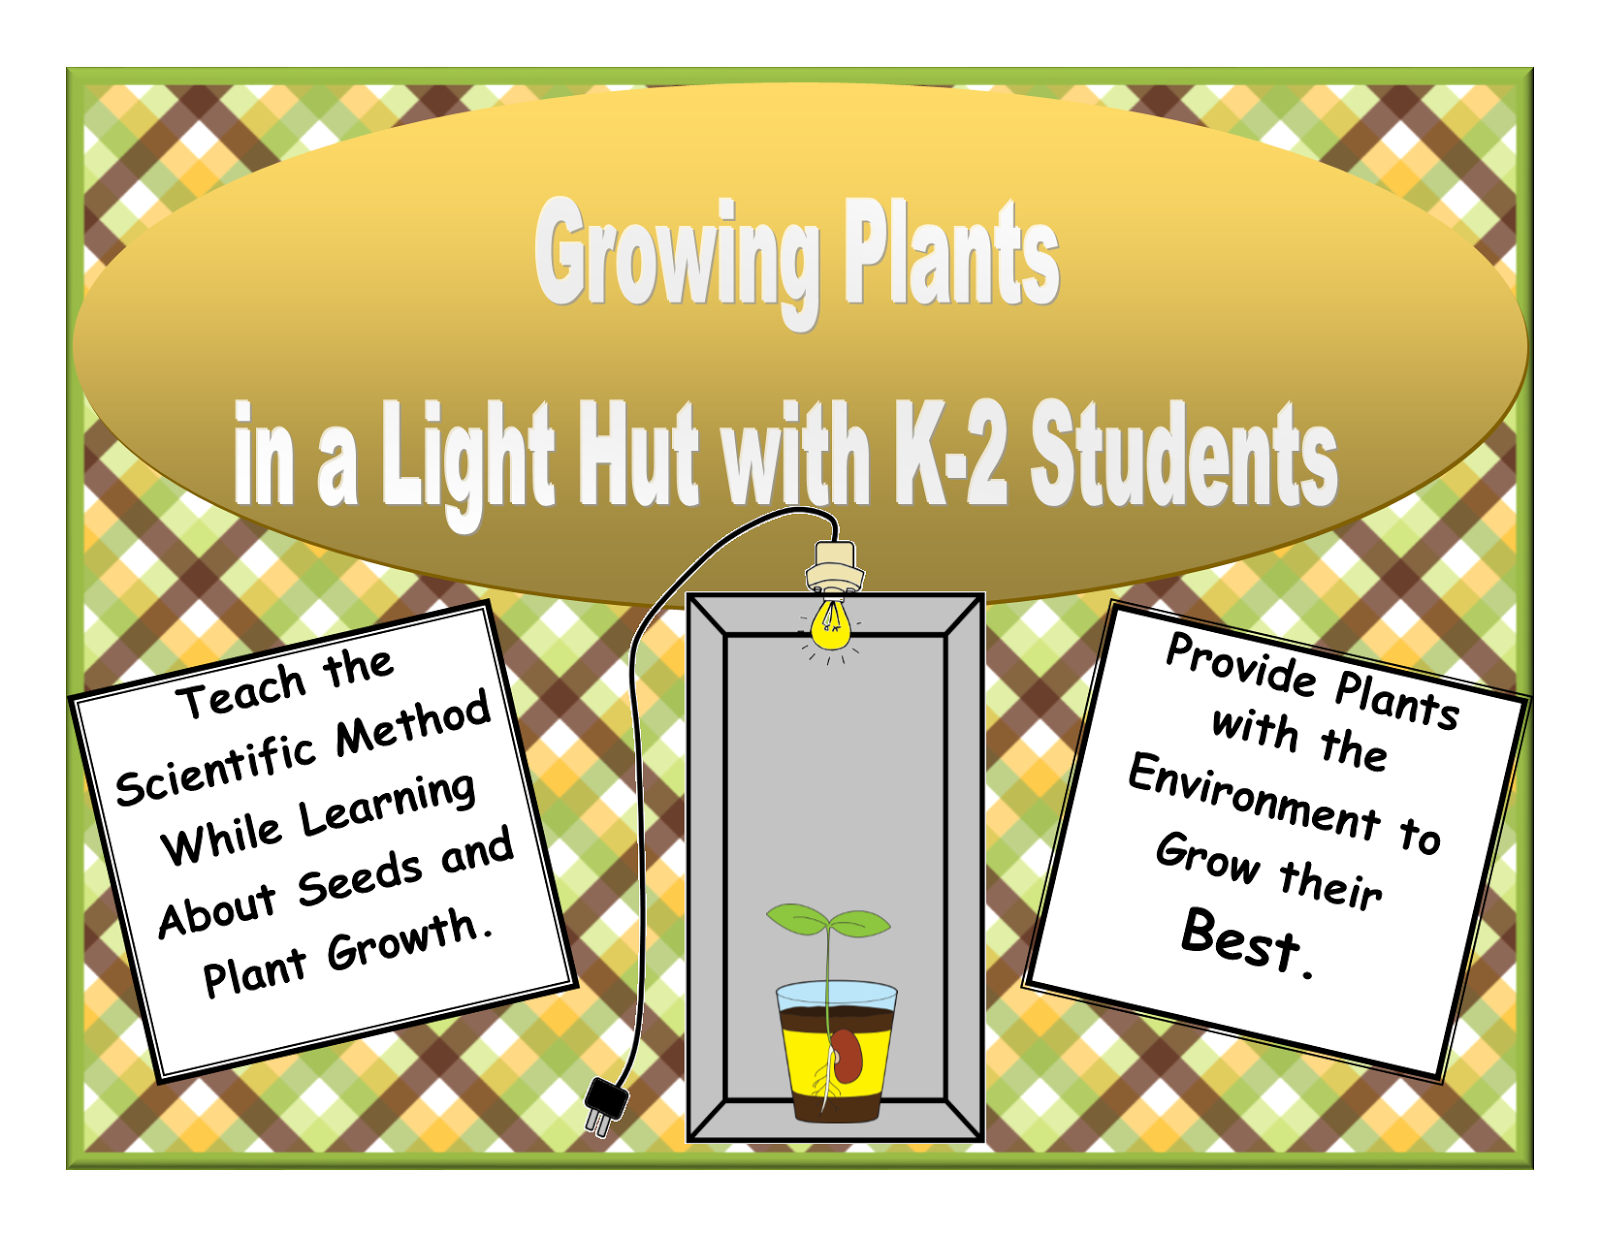 https://www.teacherspayteachers.com/Product/Growing-Plants-in-a-Light-Hut-Kindergarten-First-and-Second-Grade-Students-1588679